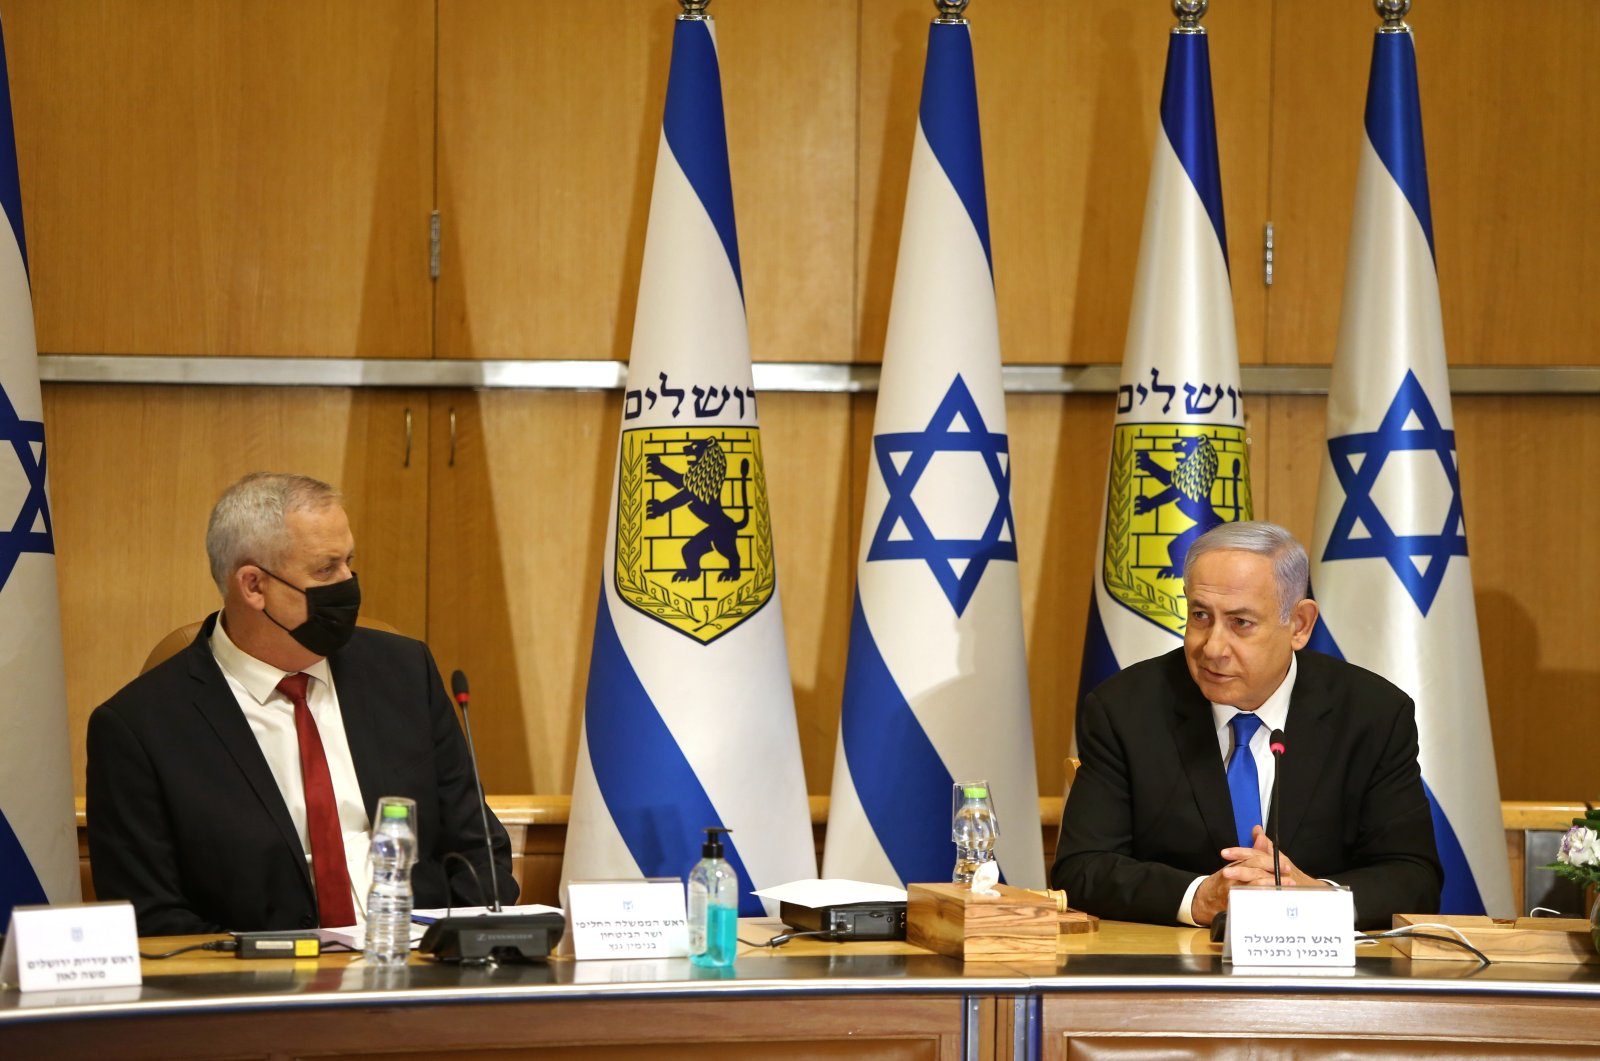 Israeli Prime Minister Benjamin Netanyahu, right, and Minister of Defense Benny Gantz attend a special cabinet meeting on the occasion of Jerusalem Day, at the Jerusalem Municipality building, in Jerusalem, Sunday, May 9, 2021. (AP Photo)